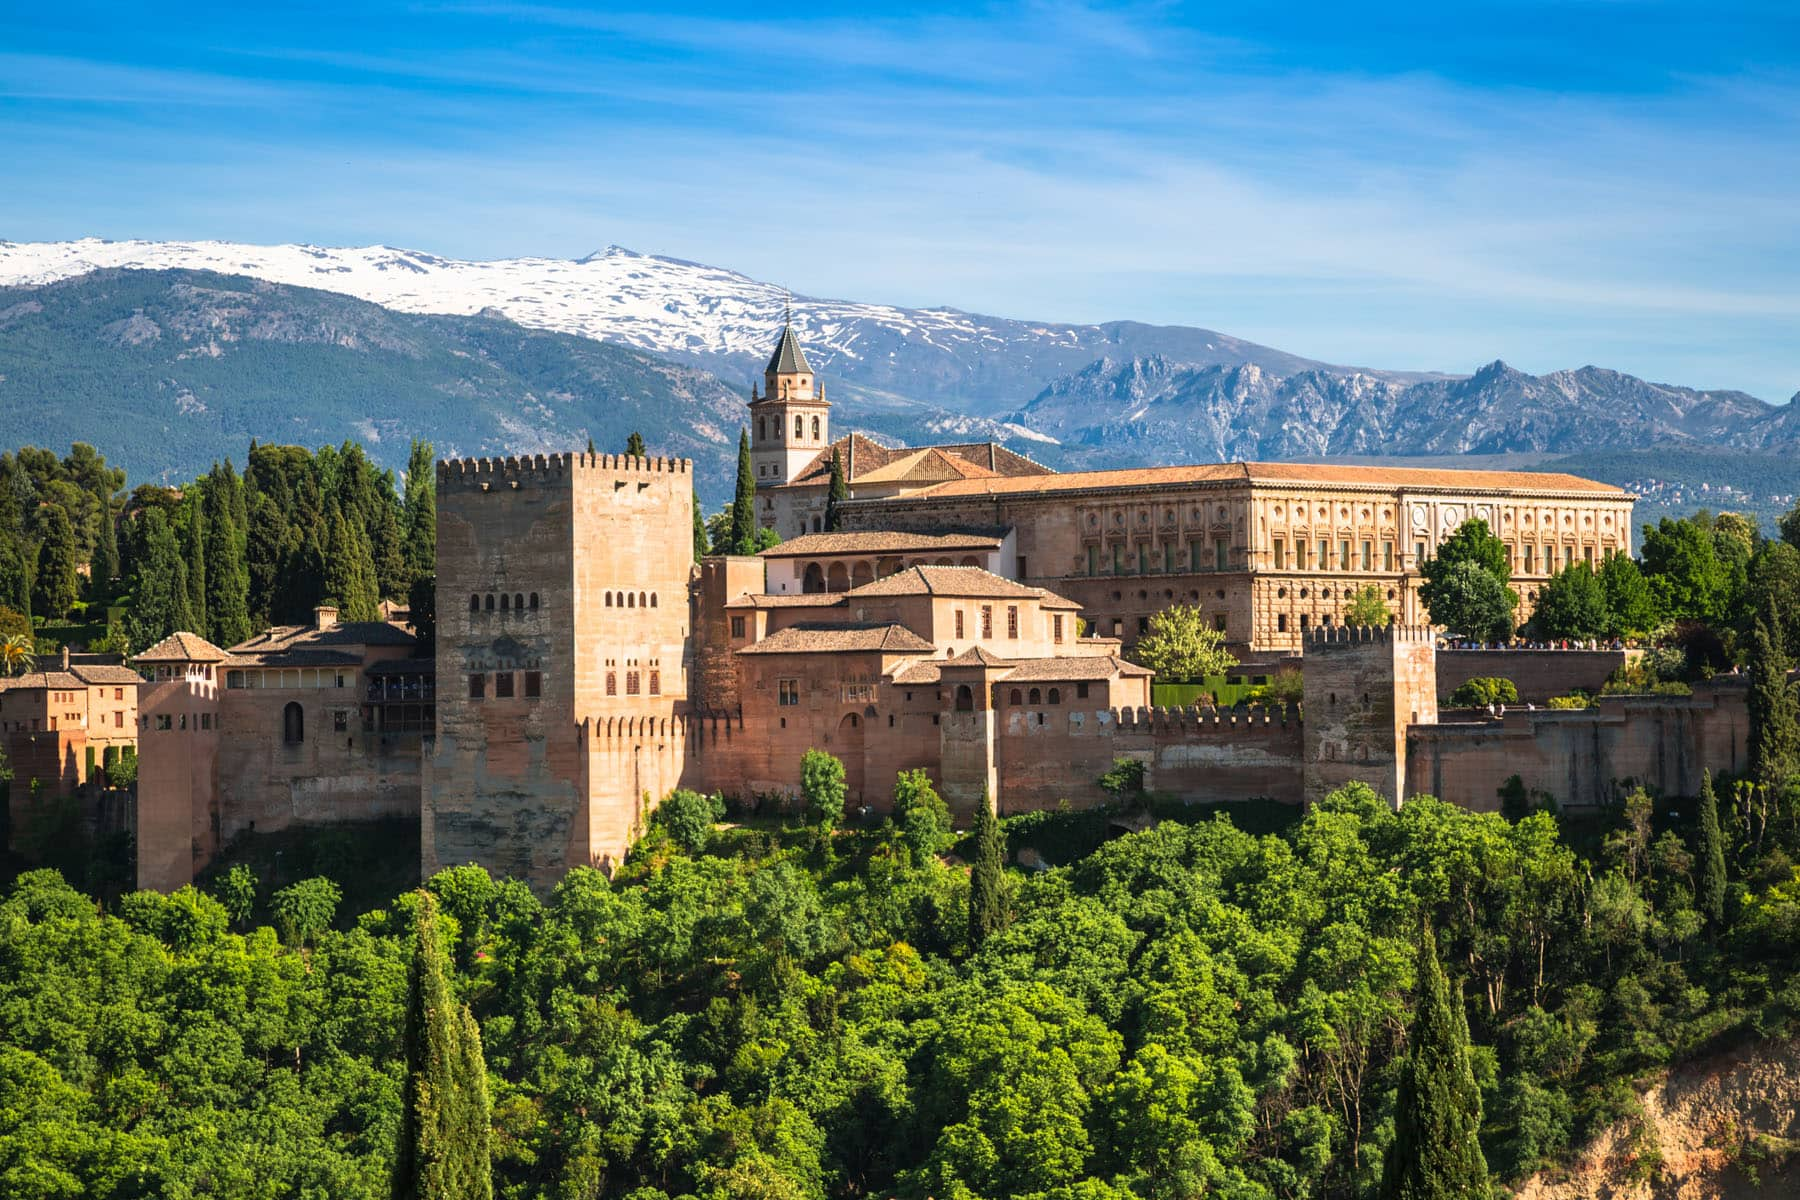 Granada, Spain - Partenza Travel plans vacation packages to Spain